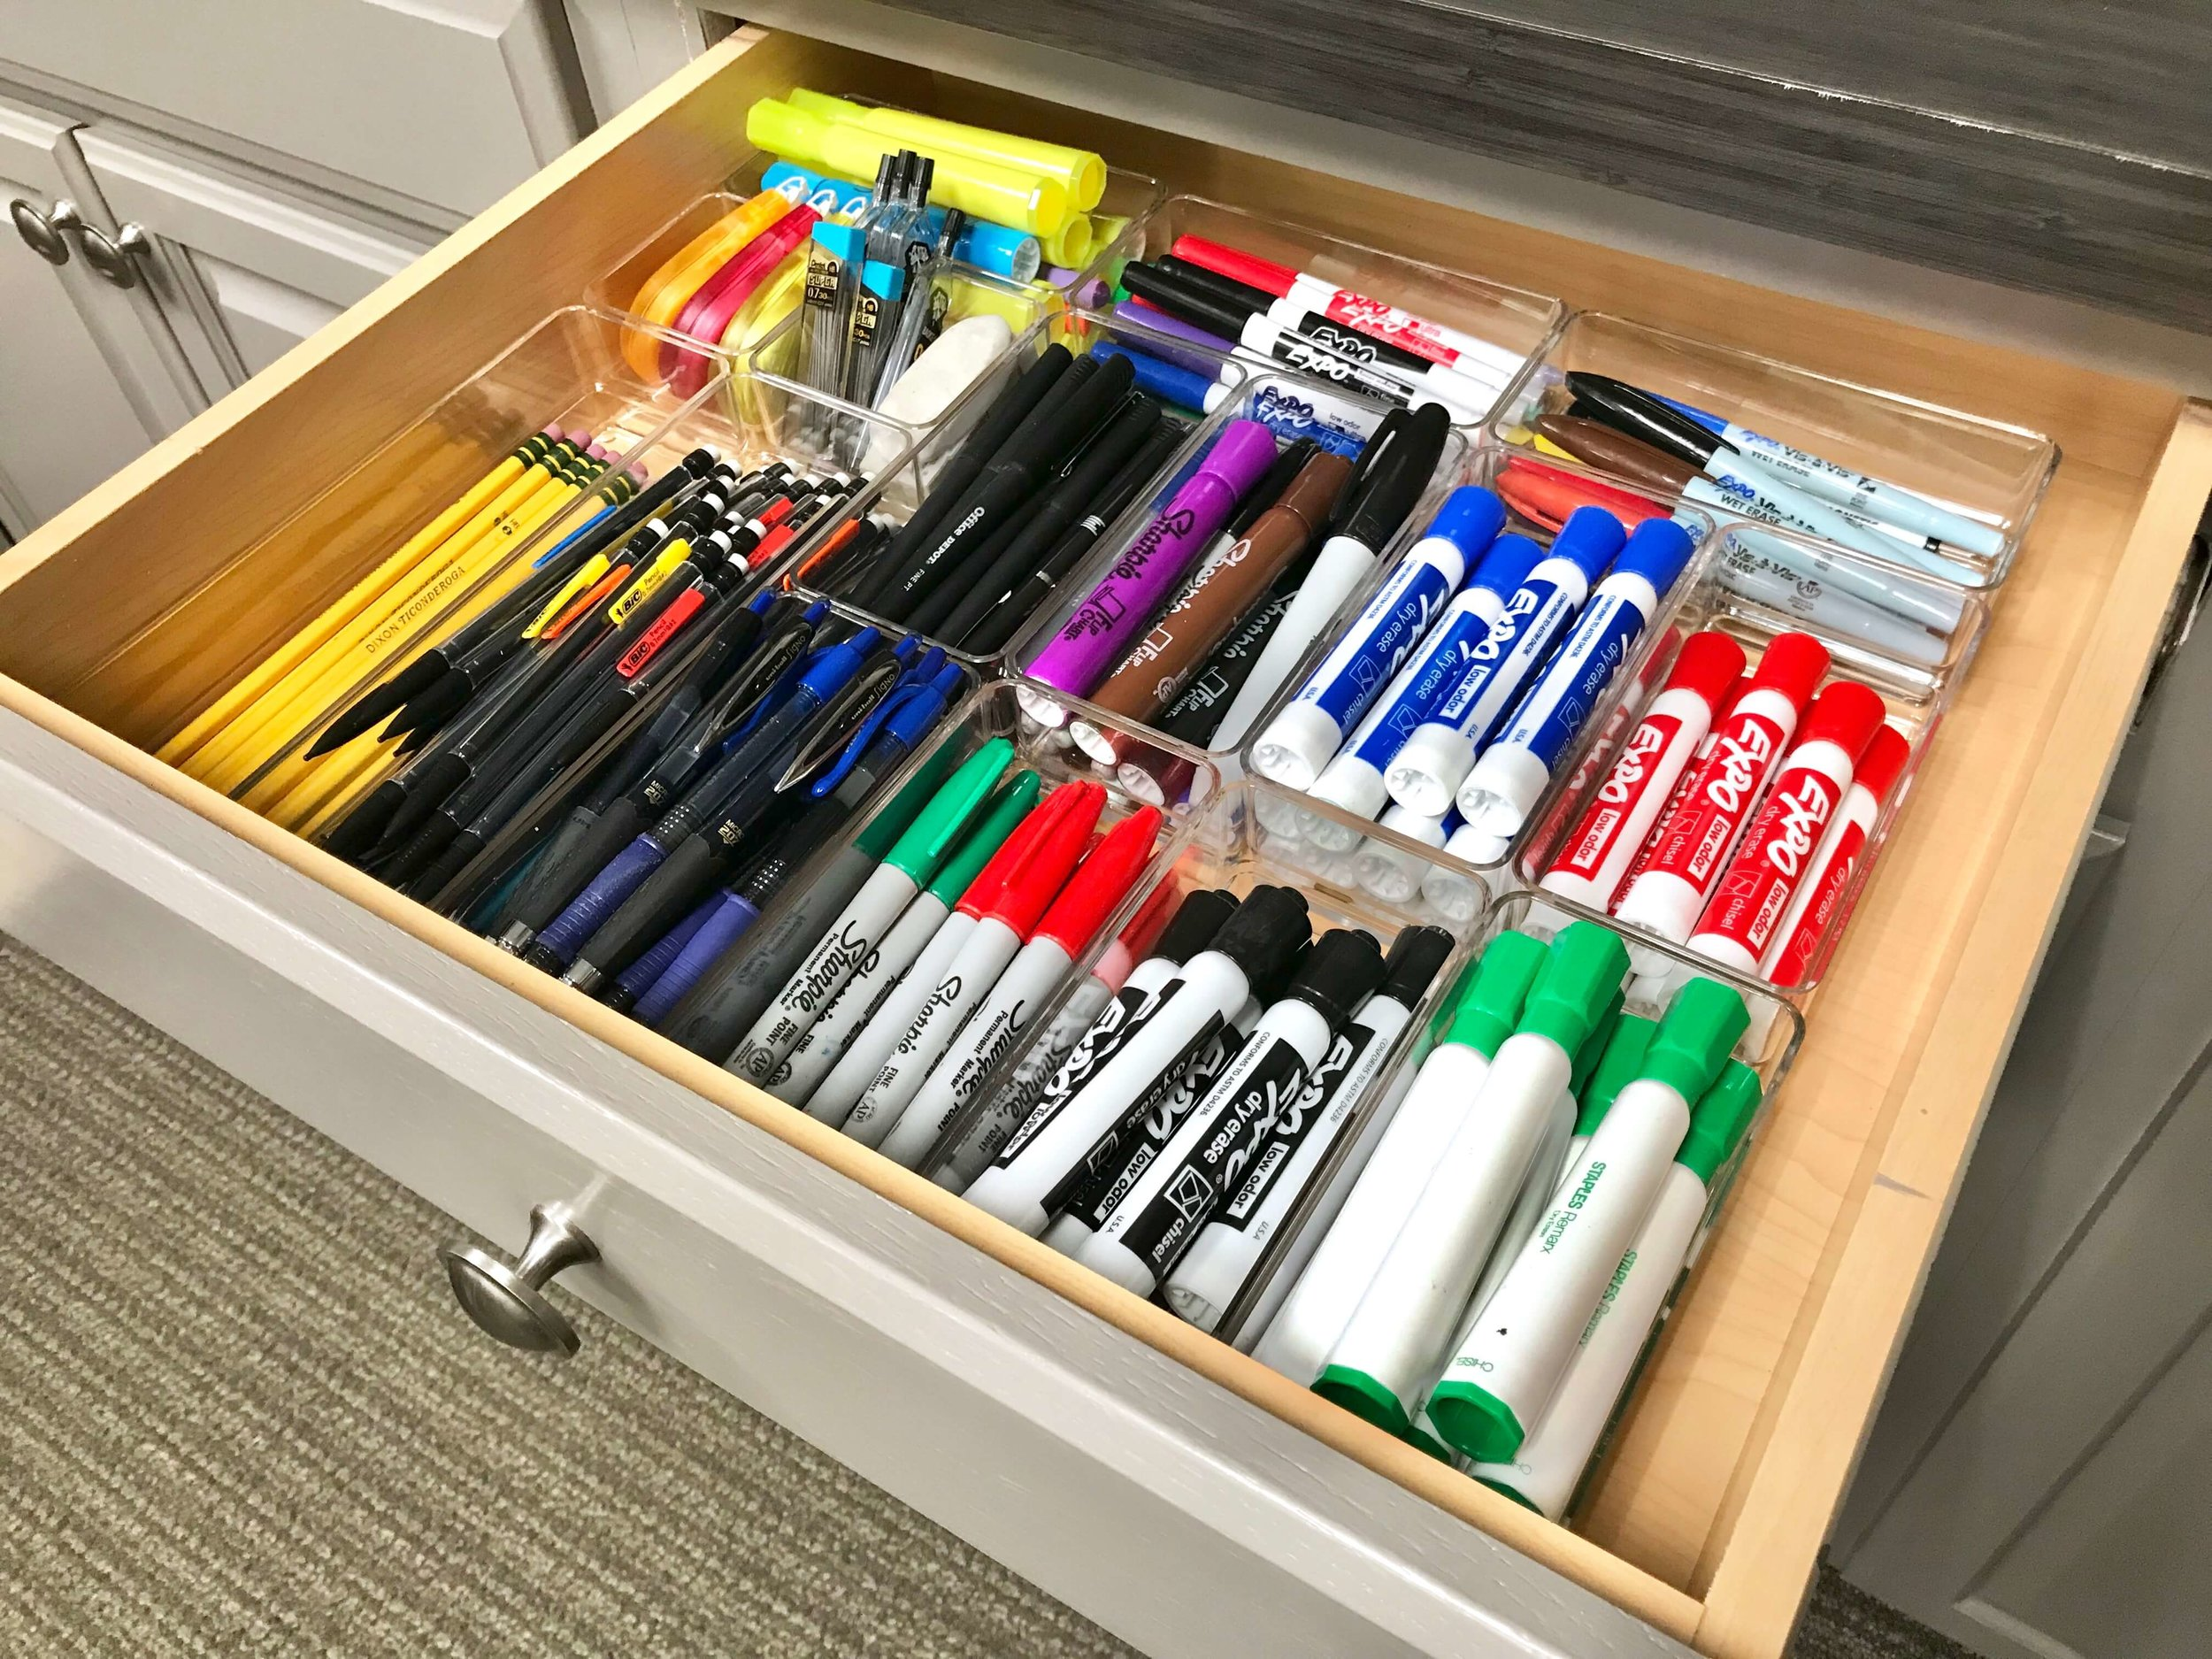 This office supply room was sorted and decluttered to create an organized and clean space.